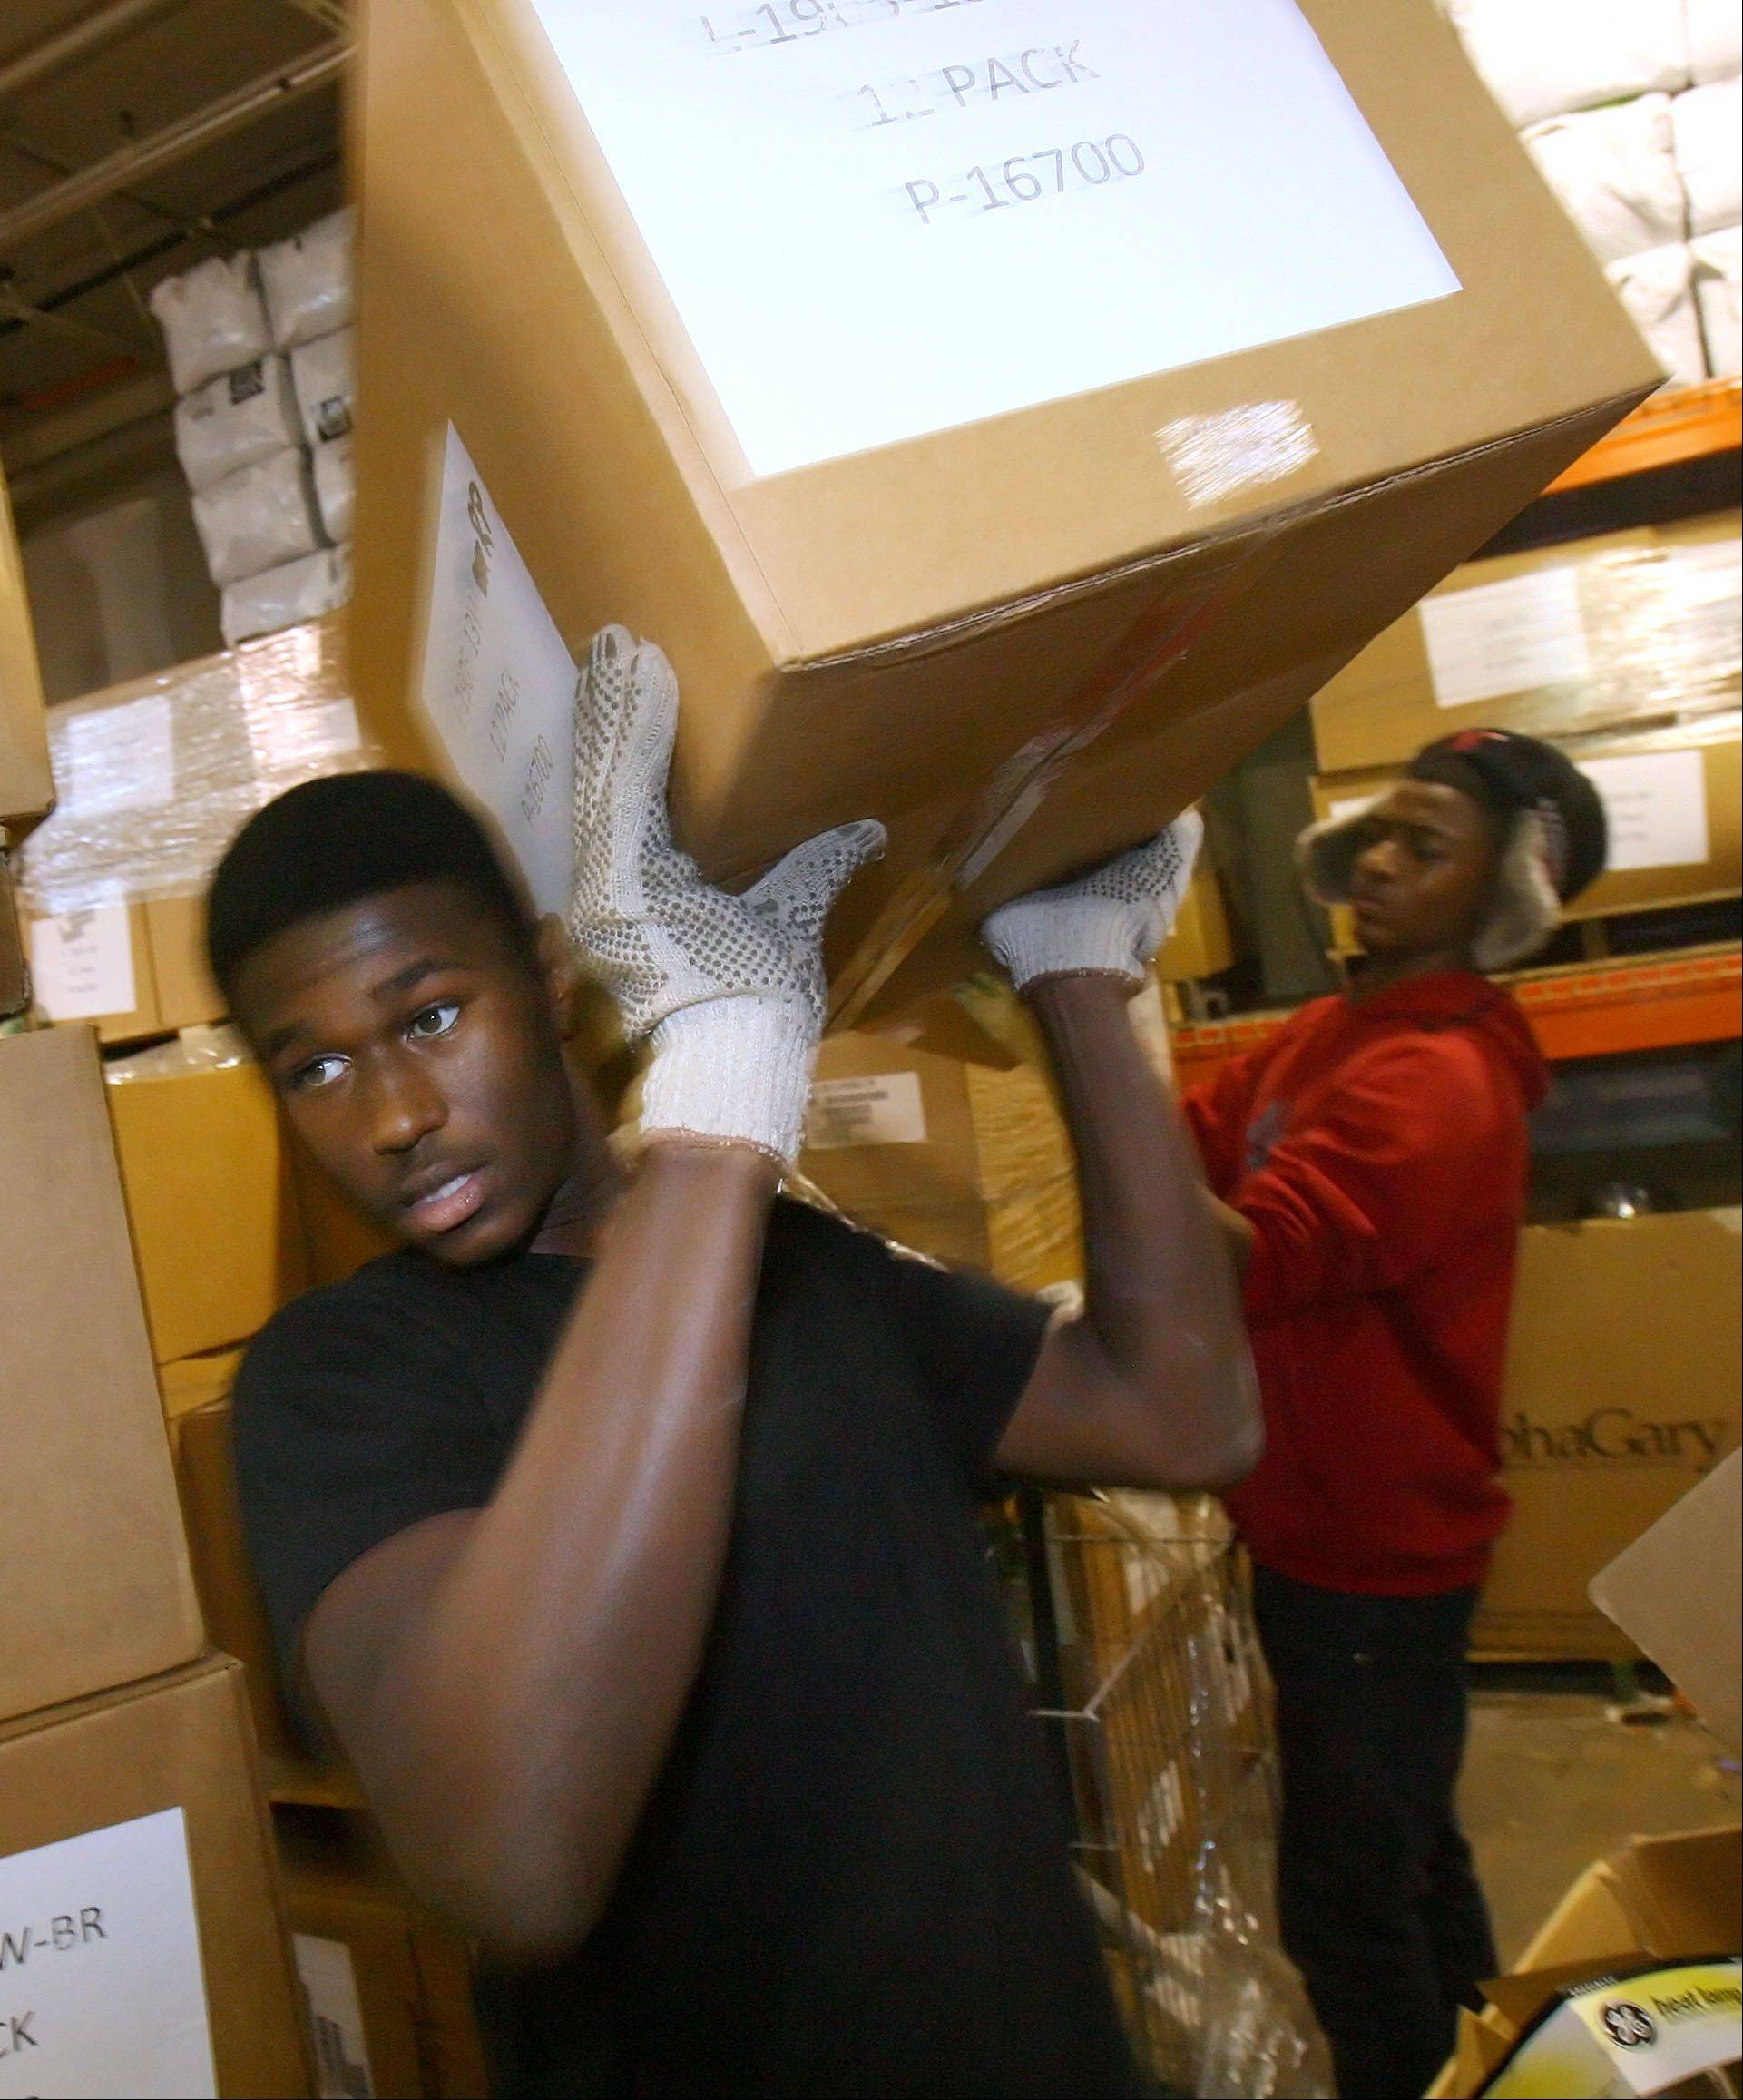 Mundelein High School sophomore Antonio Miles, left, and junior Chance Lindsey carry boxes of fluorescent light bulbs as the members of the Black Student Union volunteered their time at ReStore in Gurnee Friday.